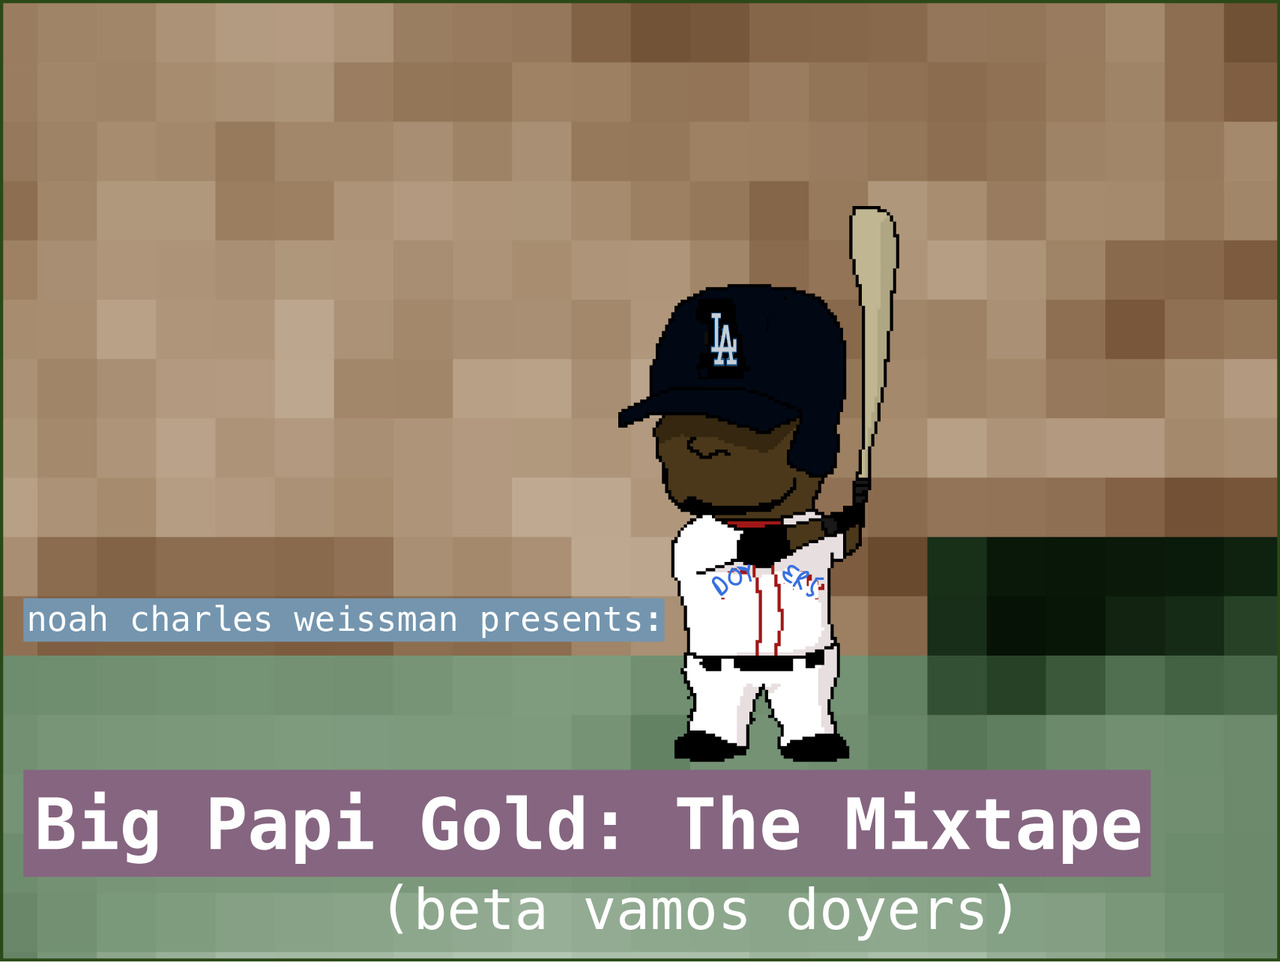 Noah Charles Weissman Presents: Big Papi Gold: The Mixtape (beta vamos doyers) What if Man Ram and Big Papi were reunited as bash brothers in Hollywood?  Imagine his Papiness cruising around in an 87' Rolls with a groovy blue Dodgers uniform on. An Iceman can dream. Hang Ten bras. Download here: http://www.mediafire.com/?dznwtfzjncm